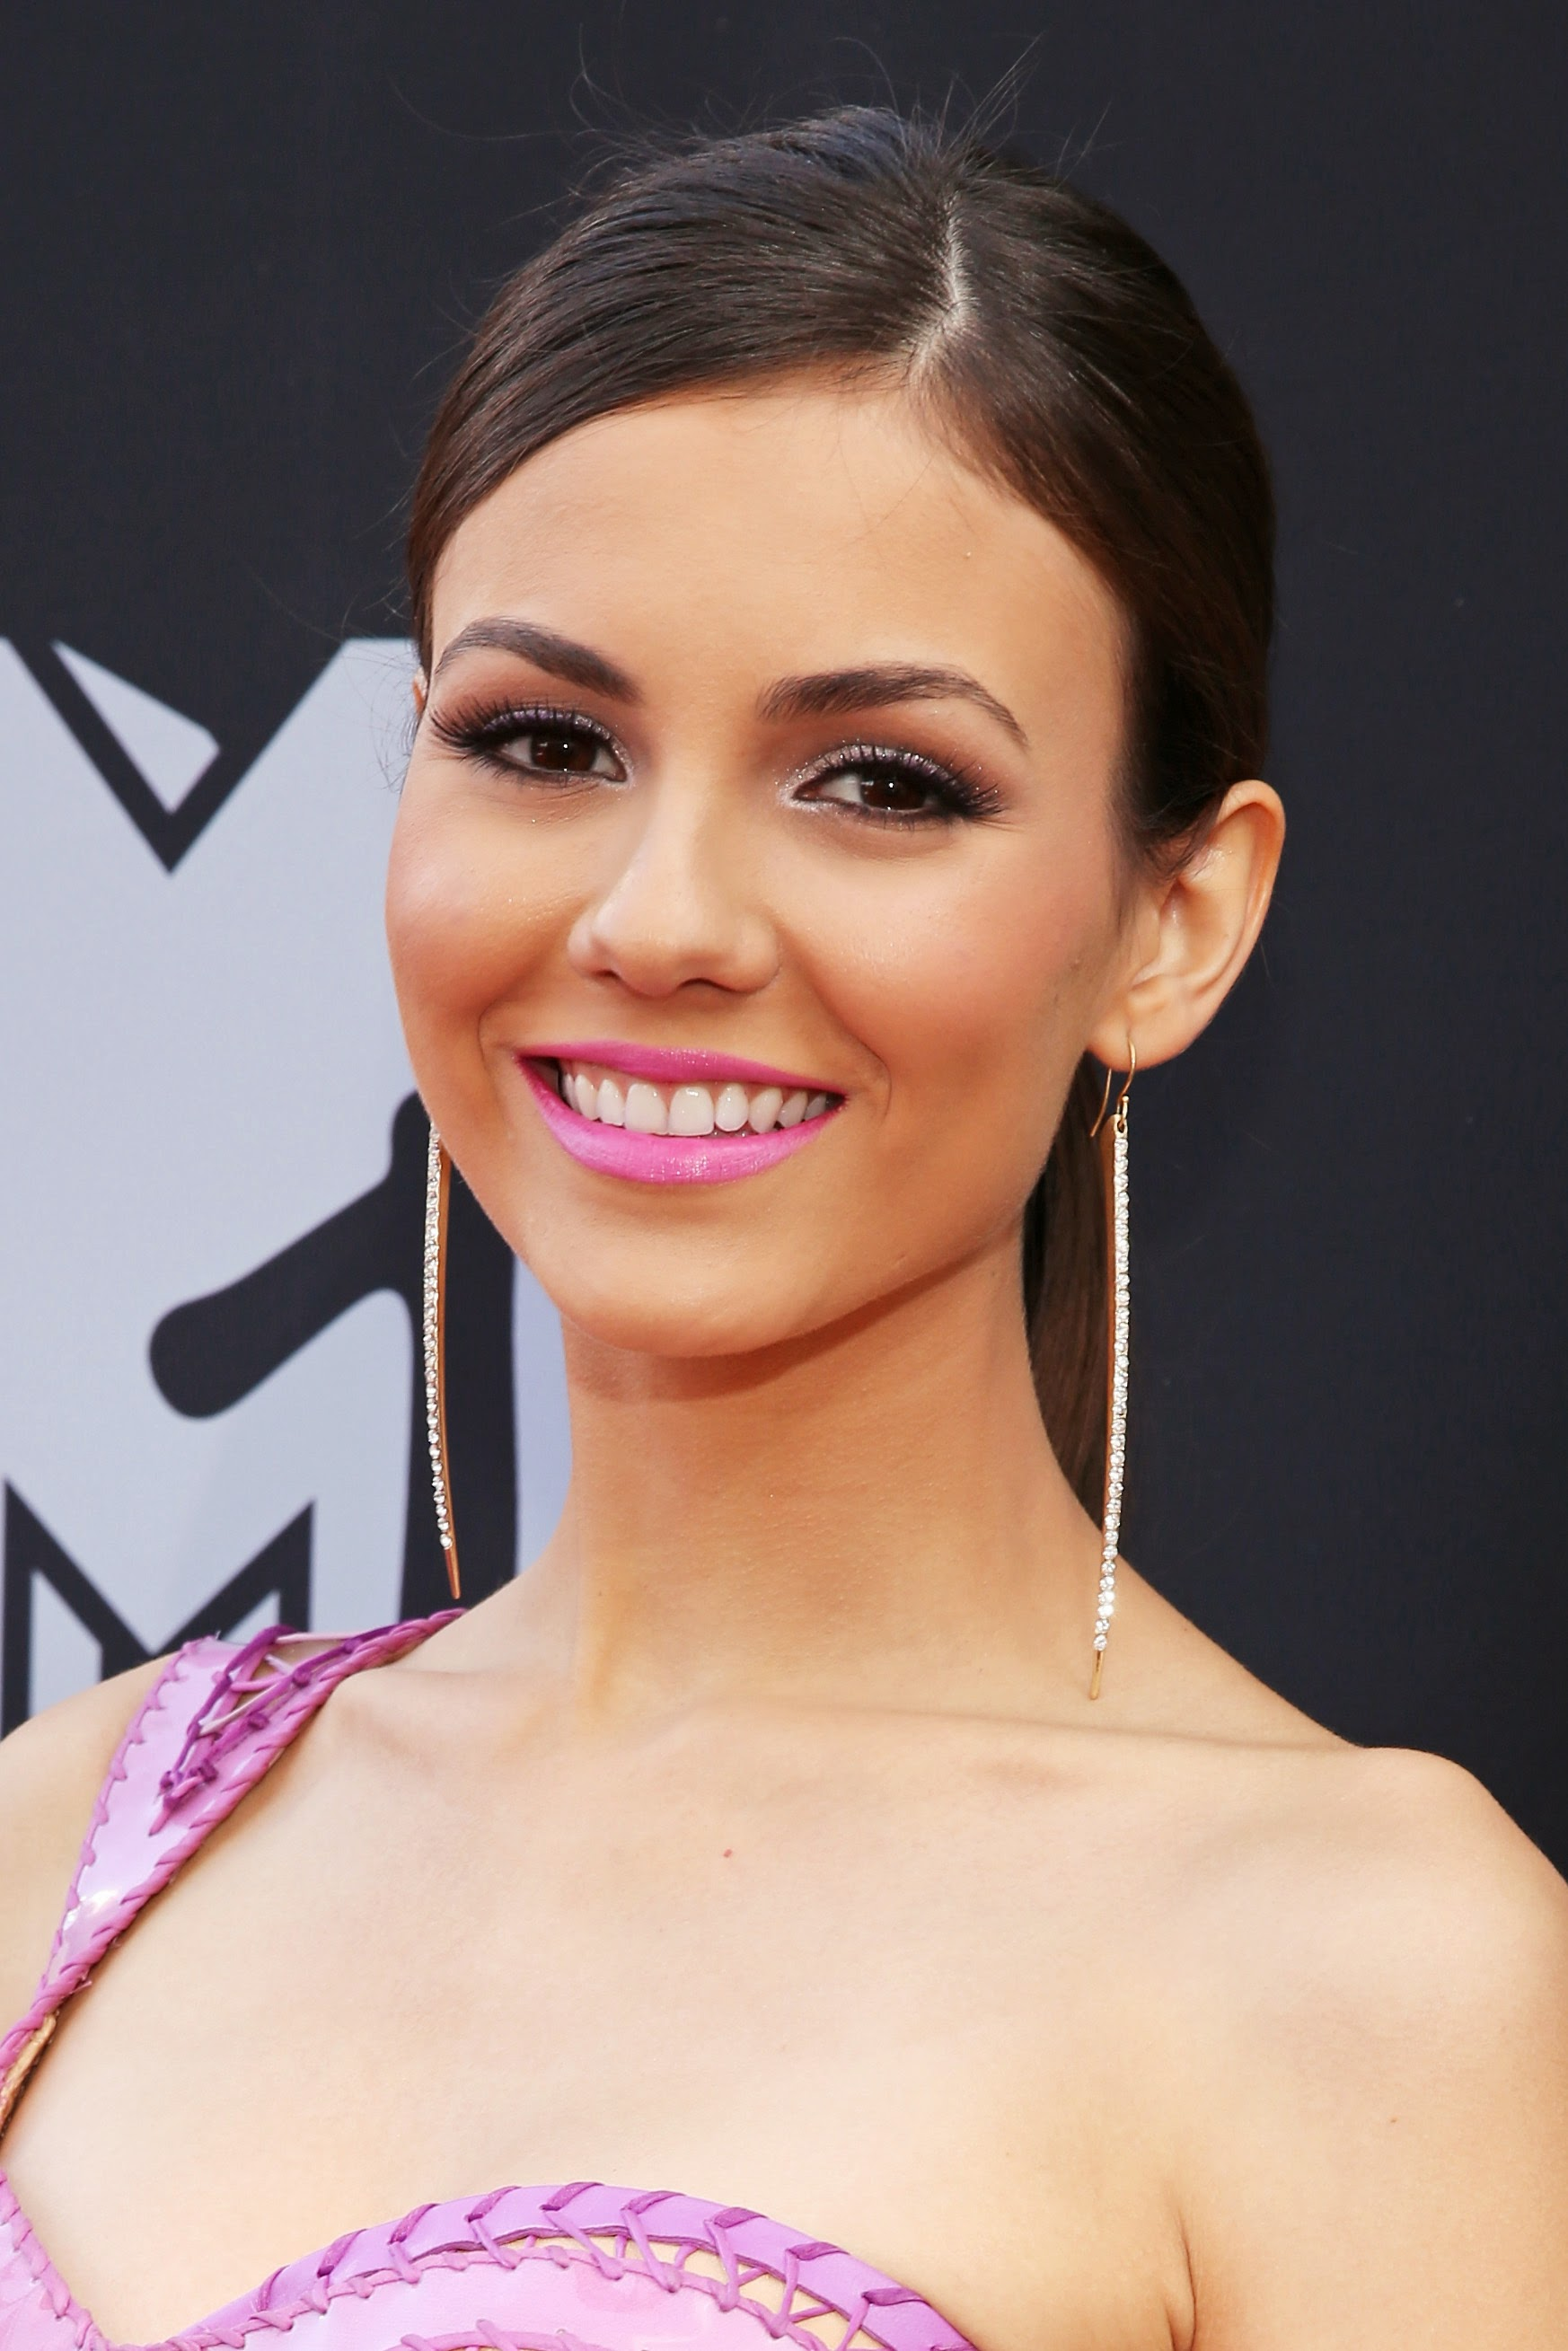 Victoria Justice Pictures Gallery 48 Film Actresses